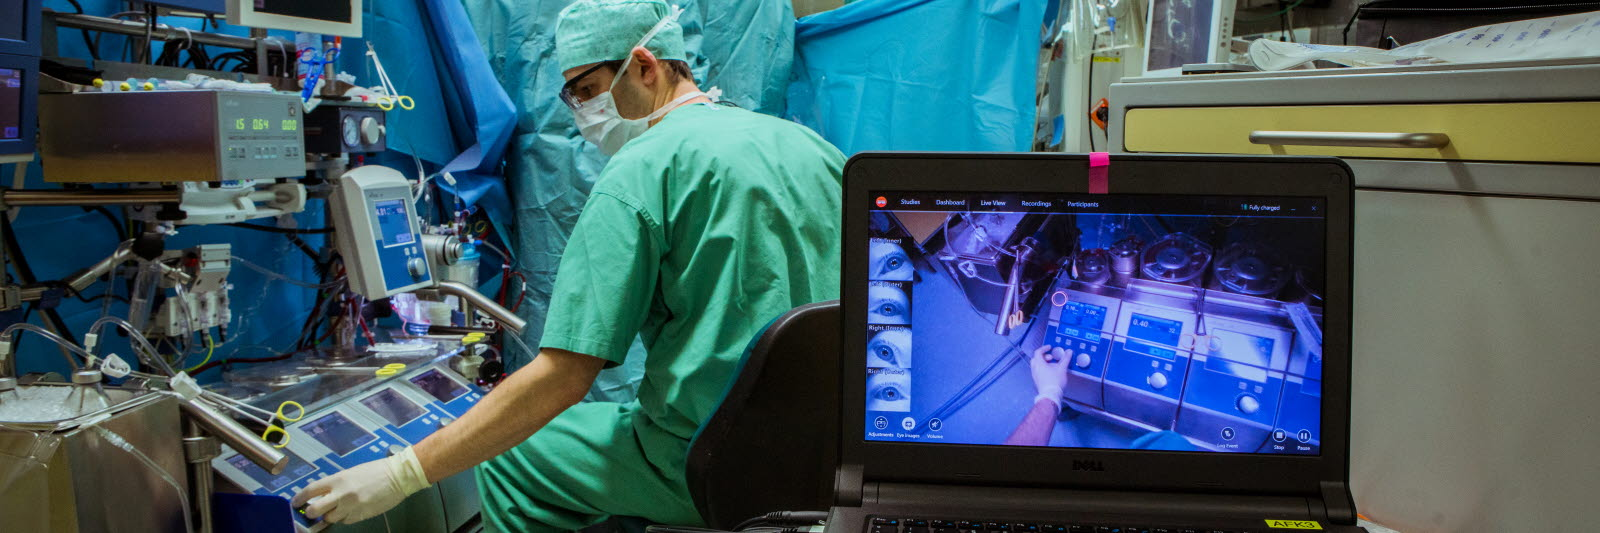 Surgeon in an operating room using eye tracking glasses